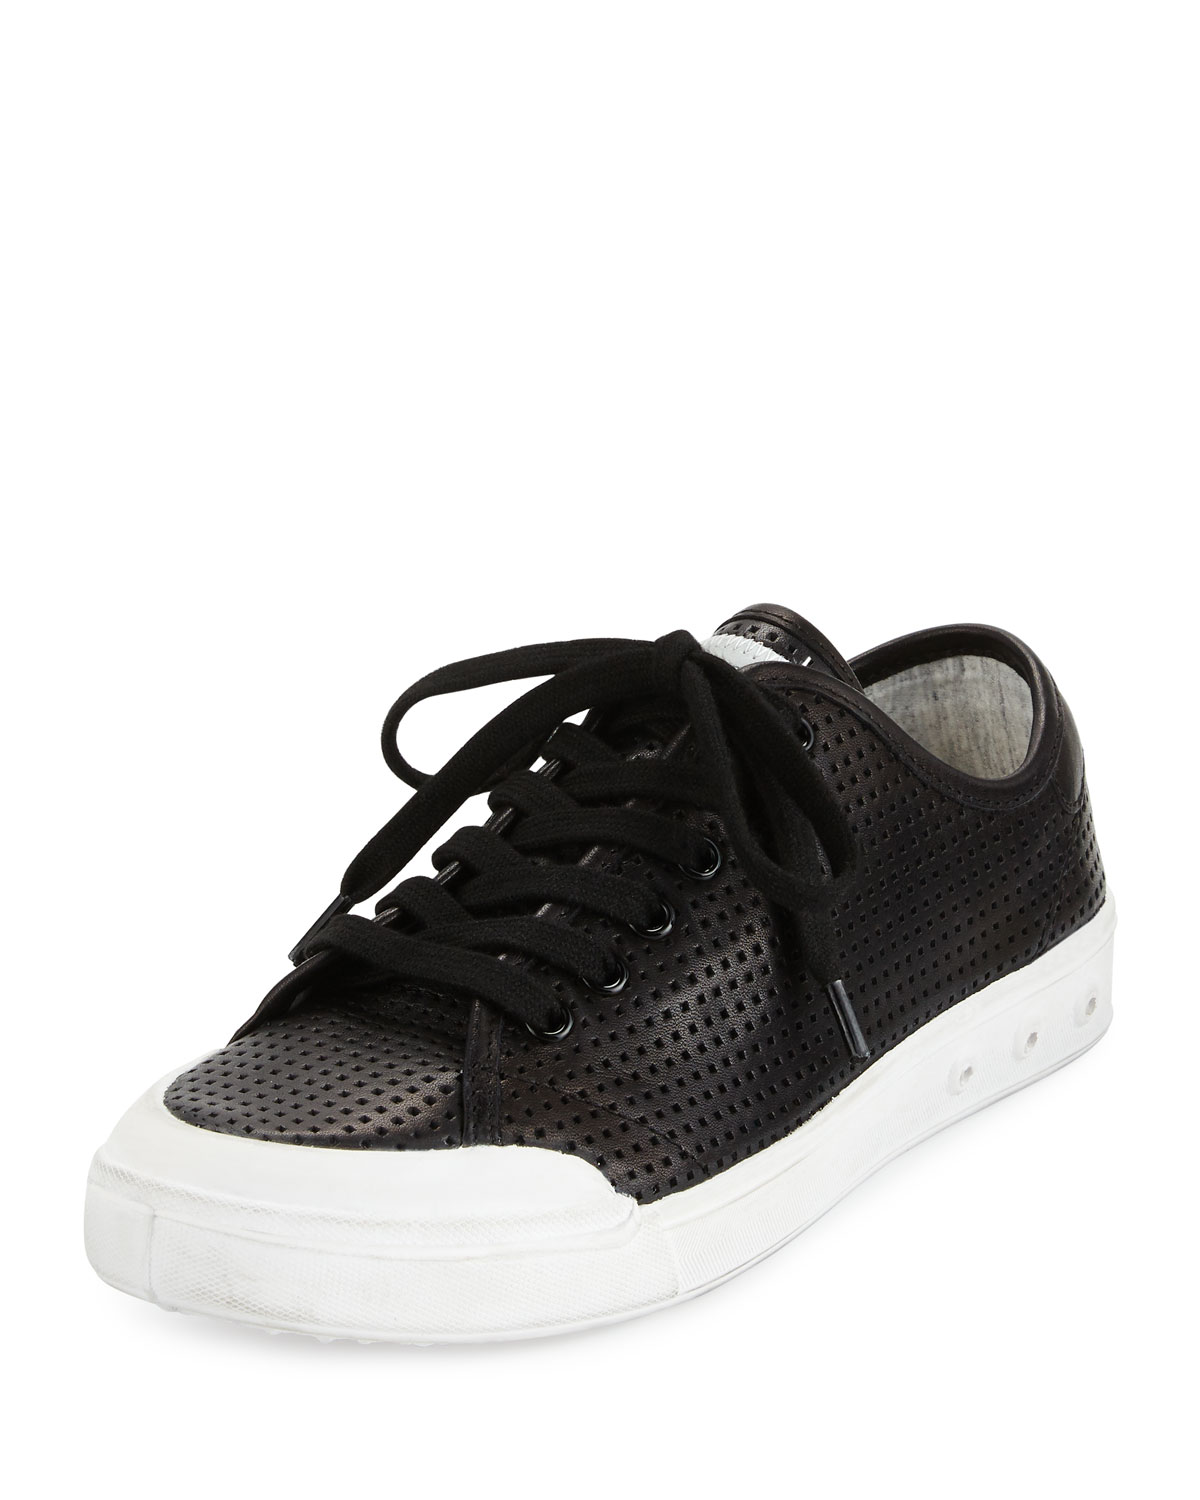 Rag & Bone Standard Issue Perforated Lace-Up Sneaker, Black | Neiman Marcus